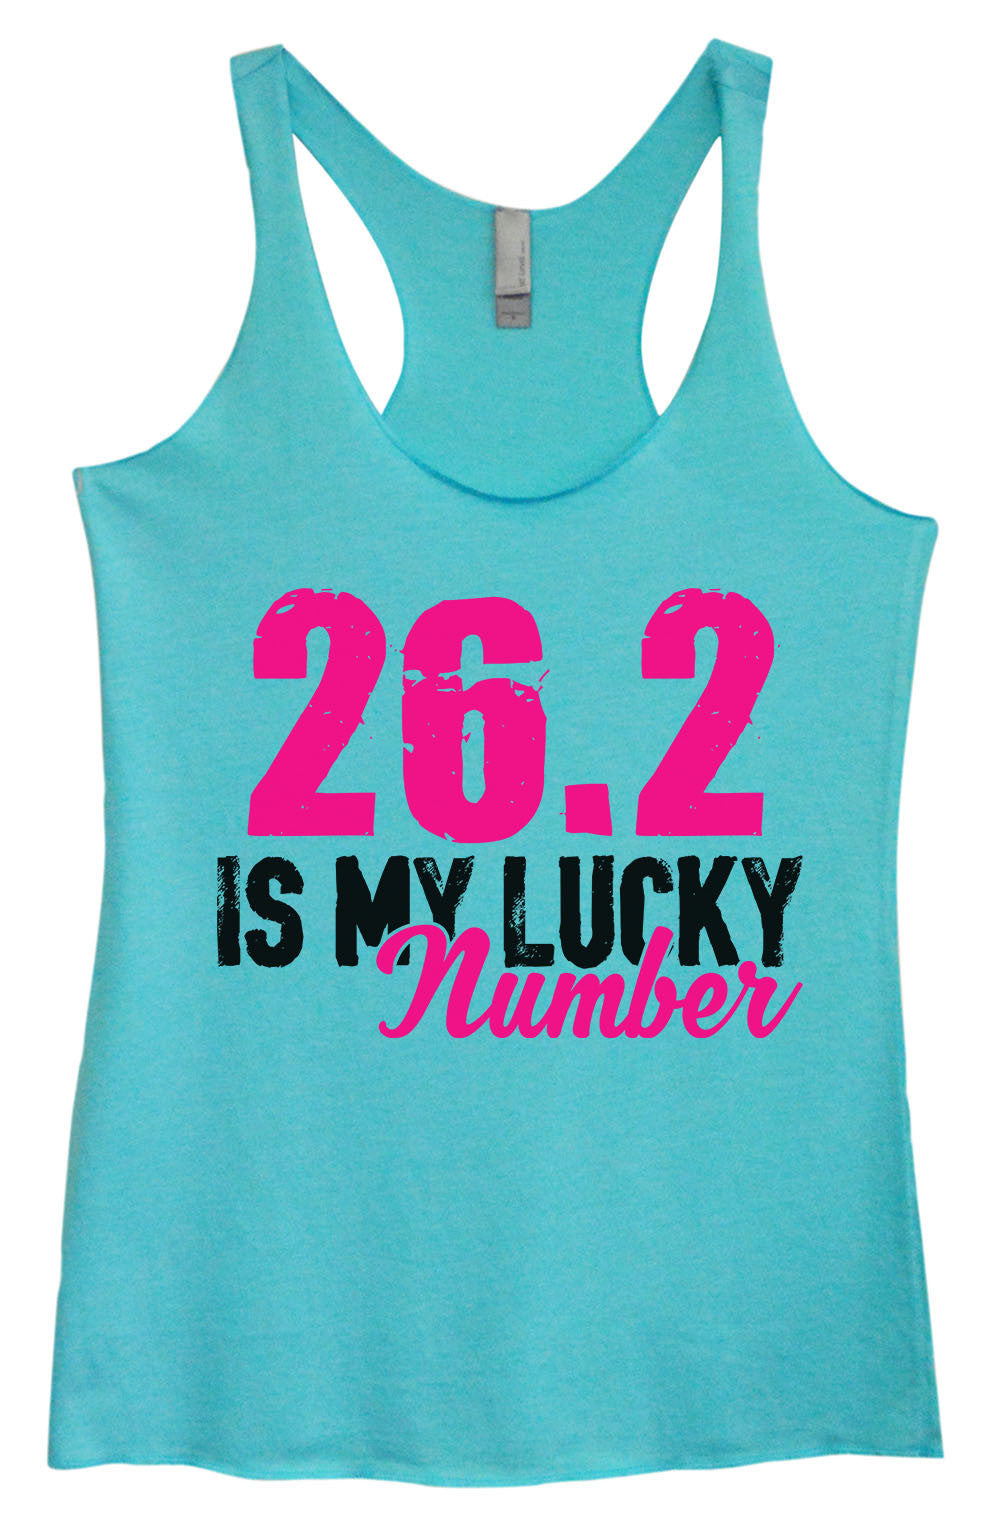 Womens Fashion Triblend Tank Top - 26.2 Is My Lucky Number - Tri-1382 - Funny Shirts Tank Tops Burnouts and Triblends  - 2